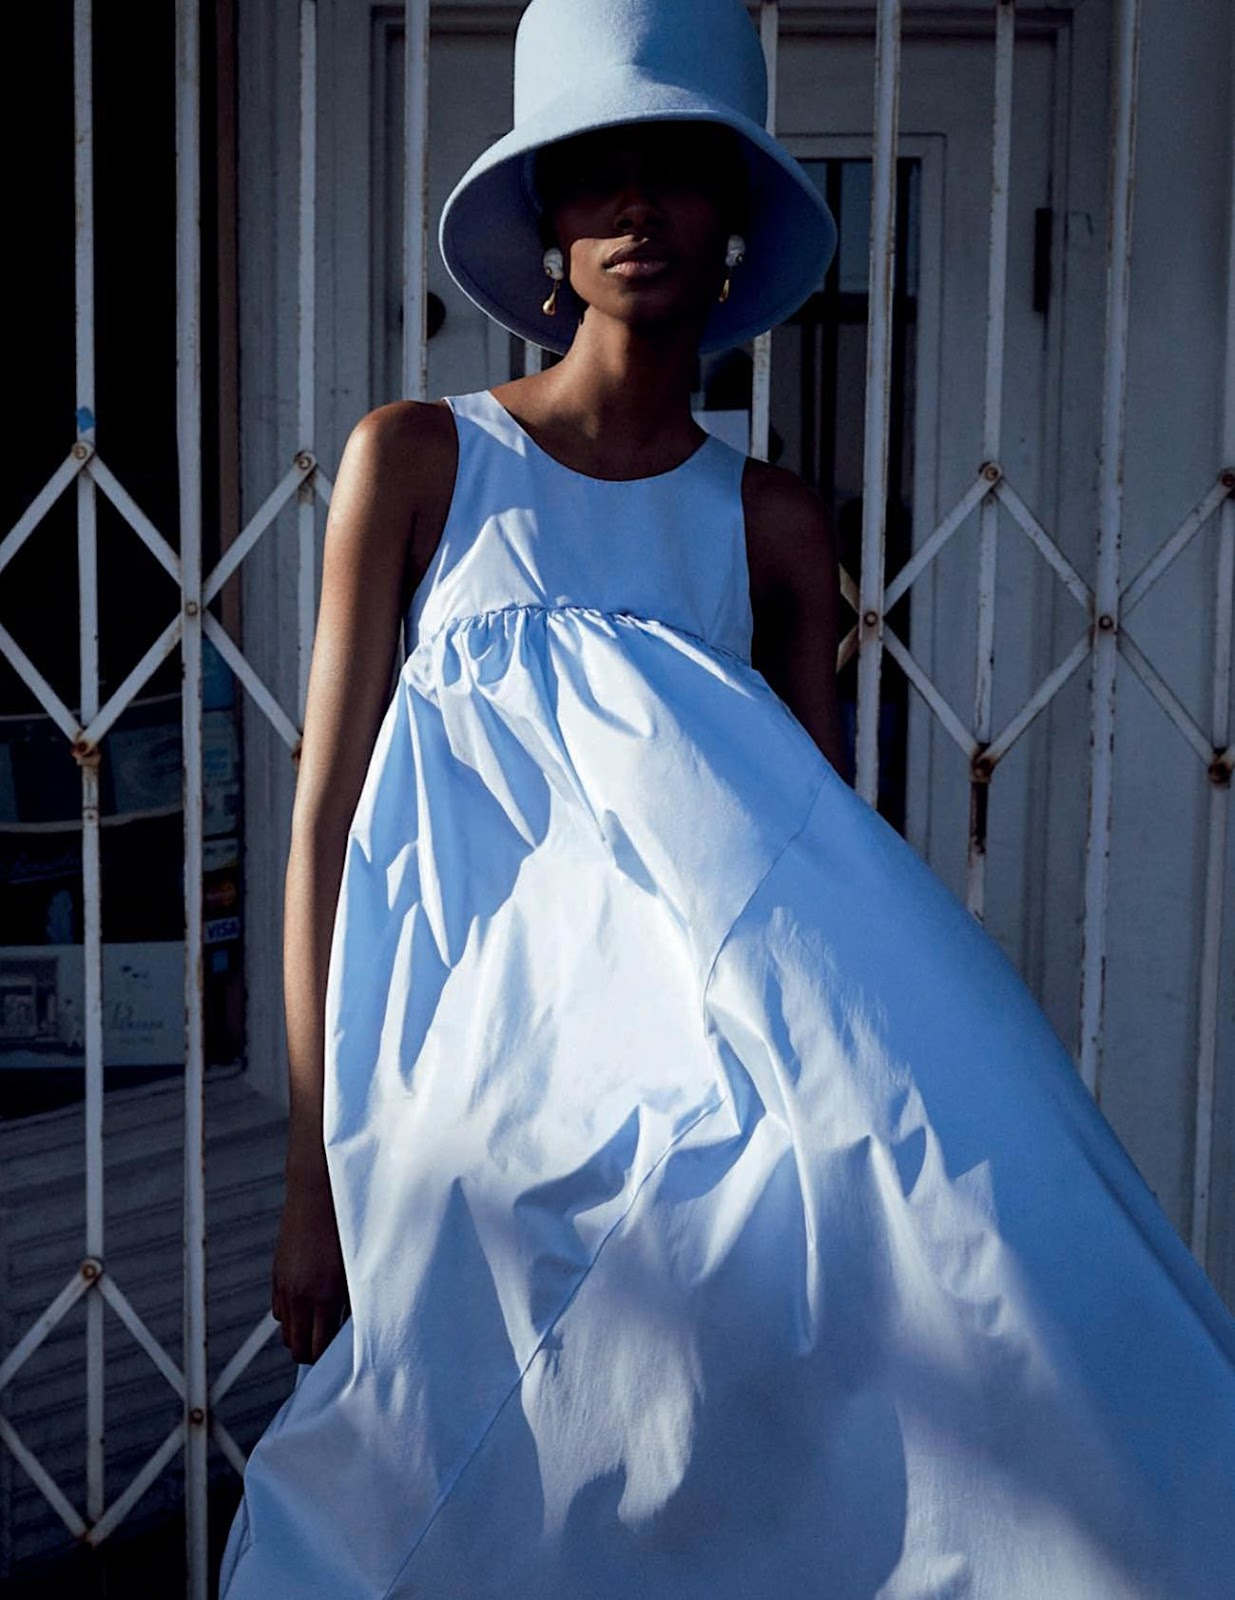 Tami Williams Alvaro Beamud Cortes Vogue Spain Sept 2019 (2).jpg